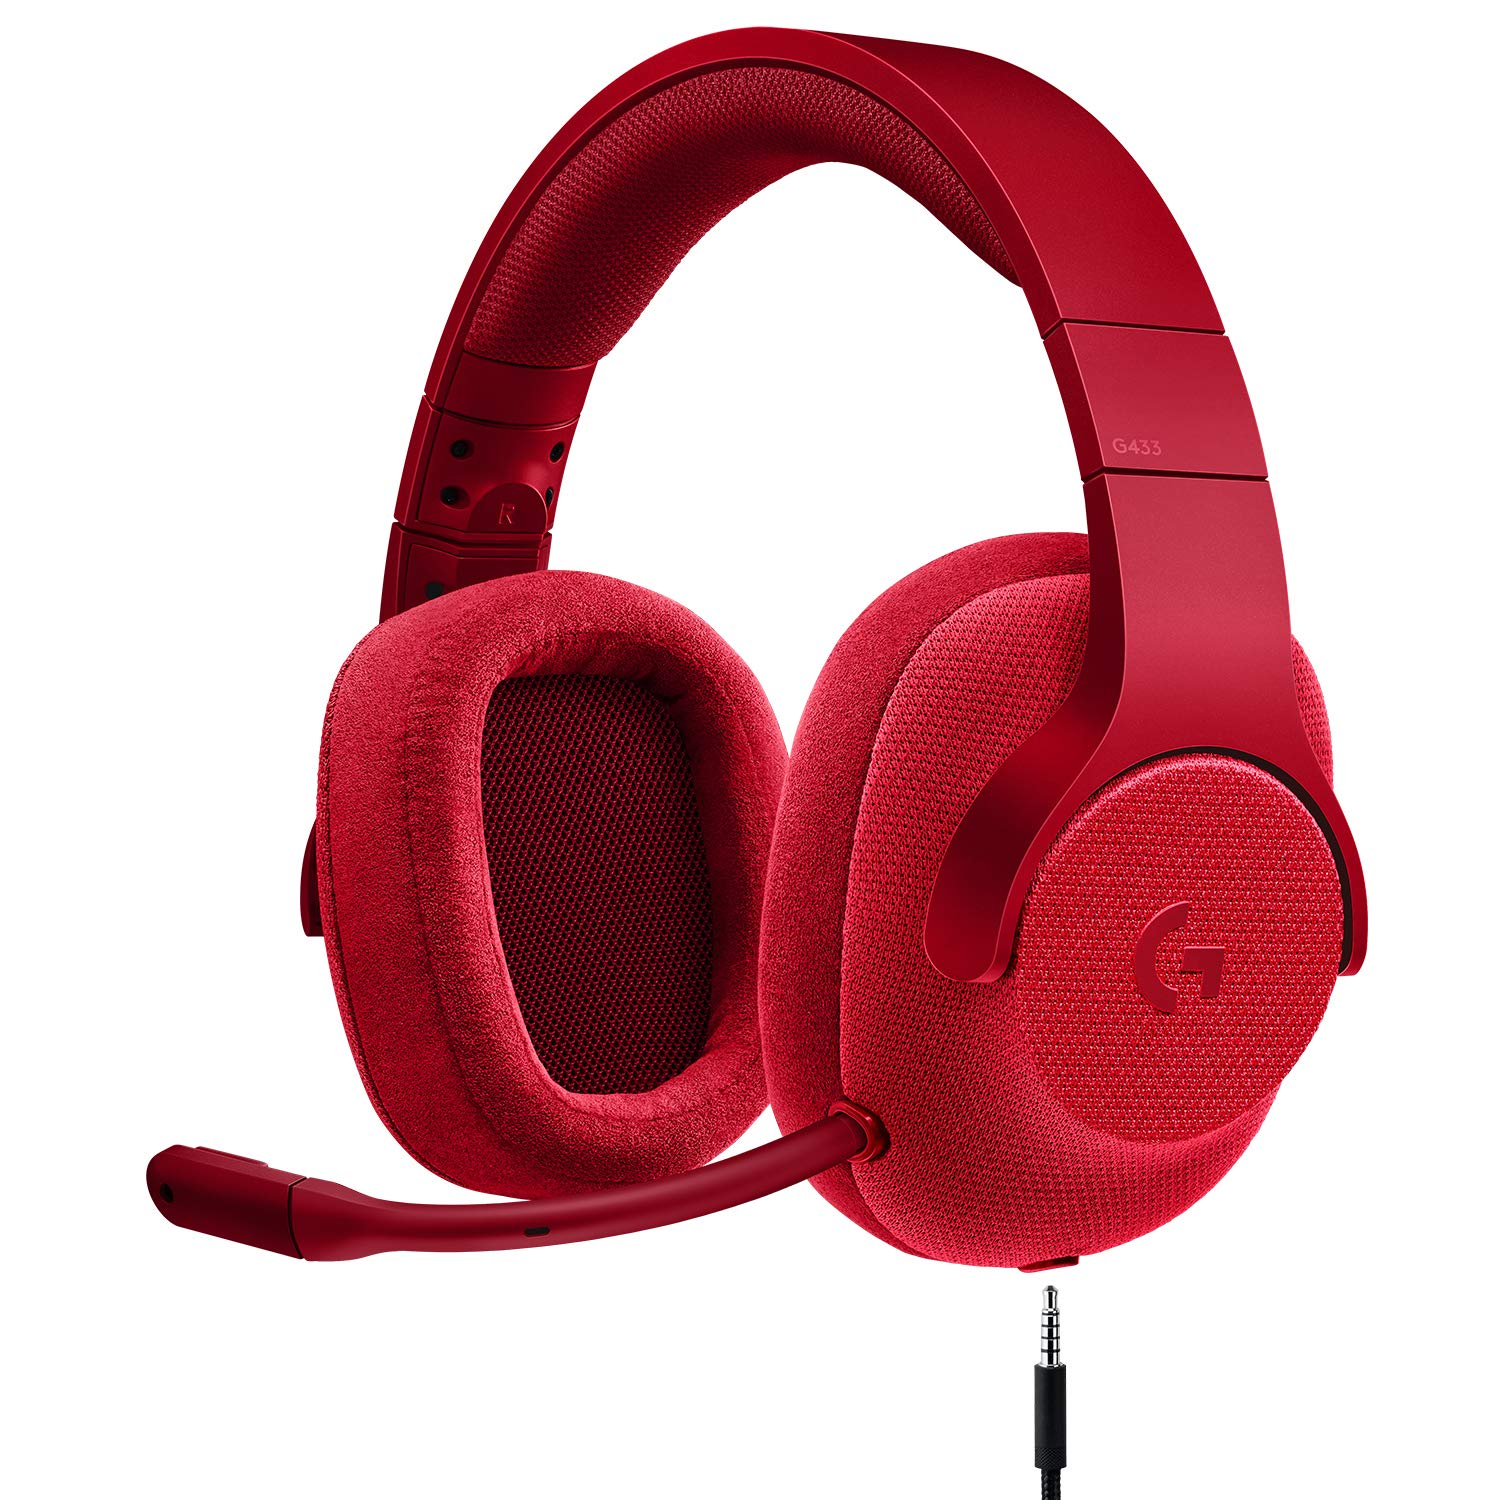 Logitech G433 7.1 Wired Gaming Headset with DTS Headphone: X 7.1 Surround for PC, PS4, PS4 PRO, Xbox One, Xbox One S, Nintendo Switch - Fire Red by Logitech G